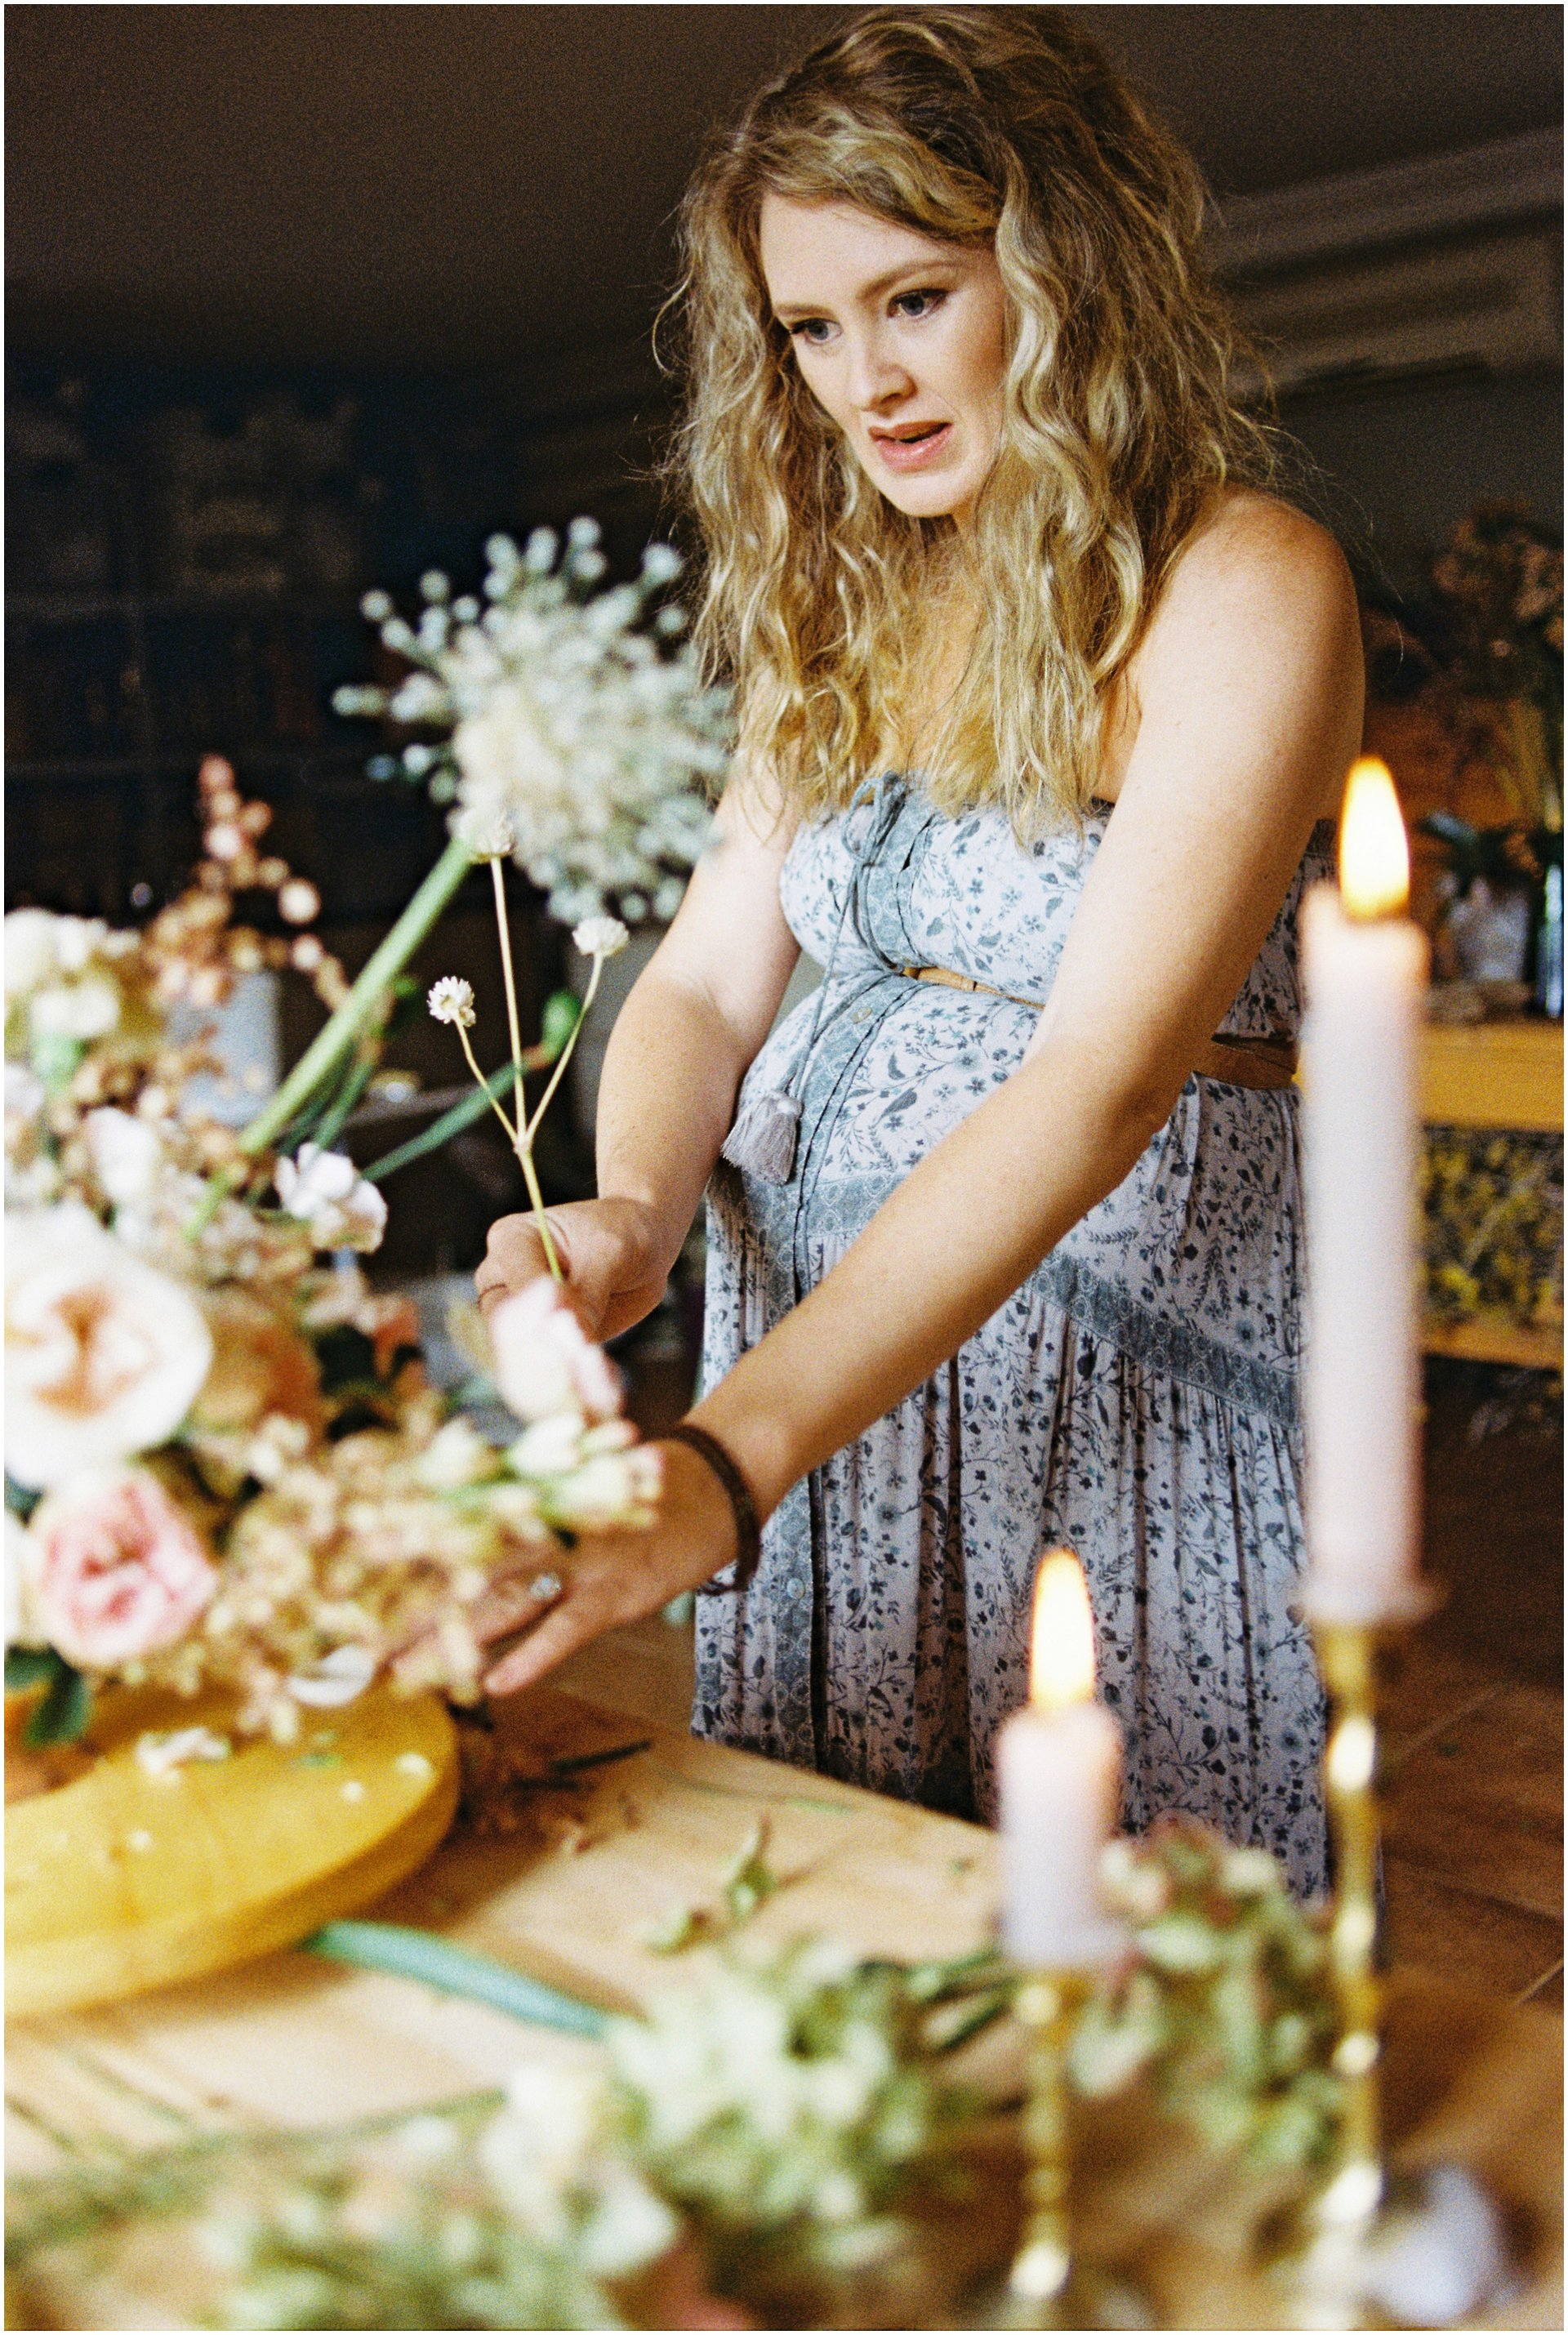 Flower and Maternity shoot captured on 35mm film